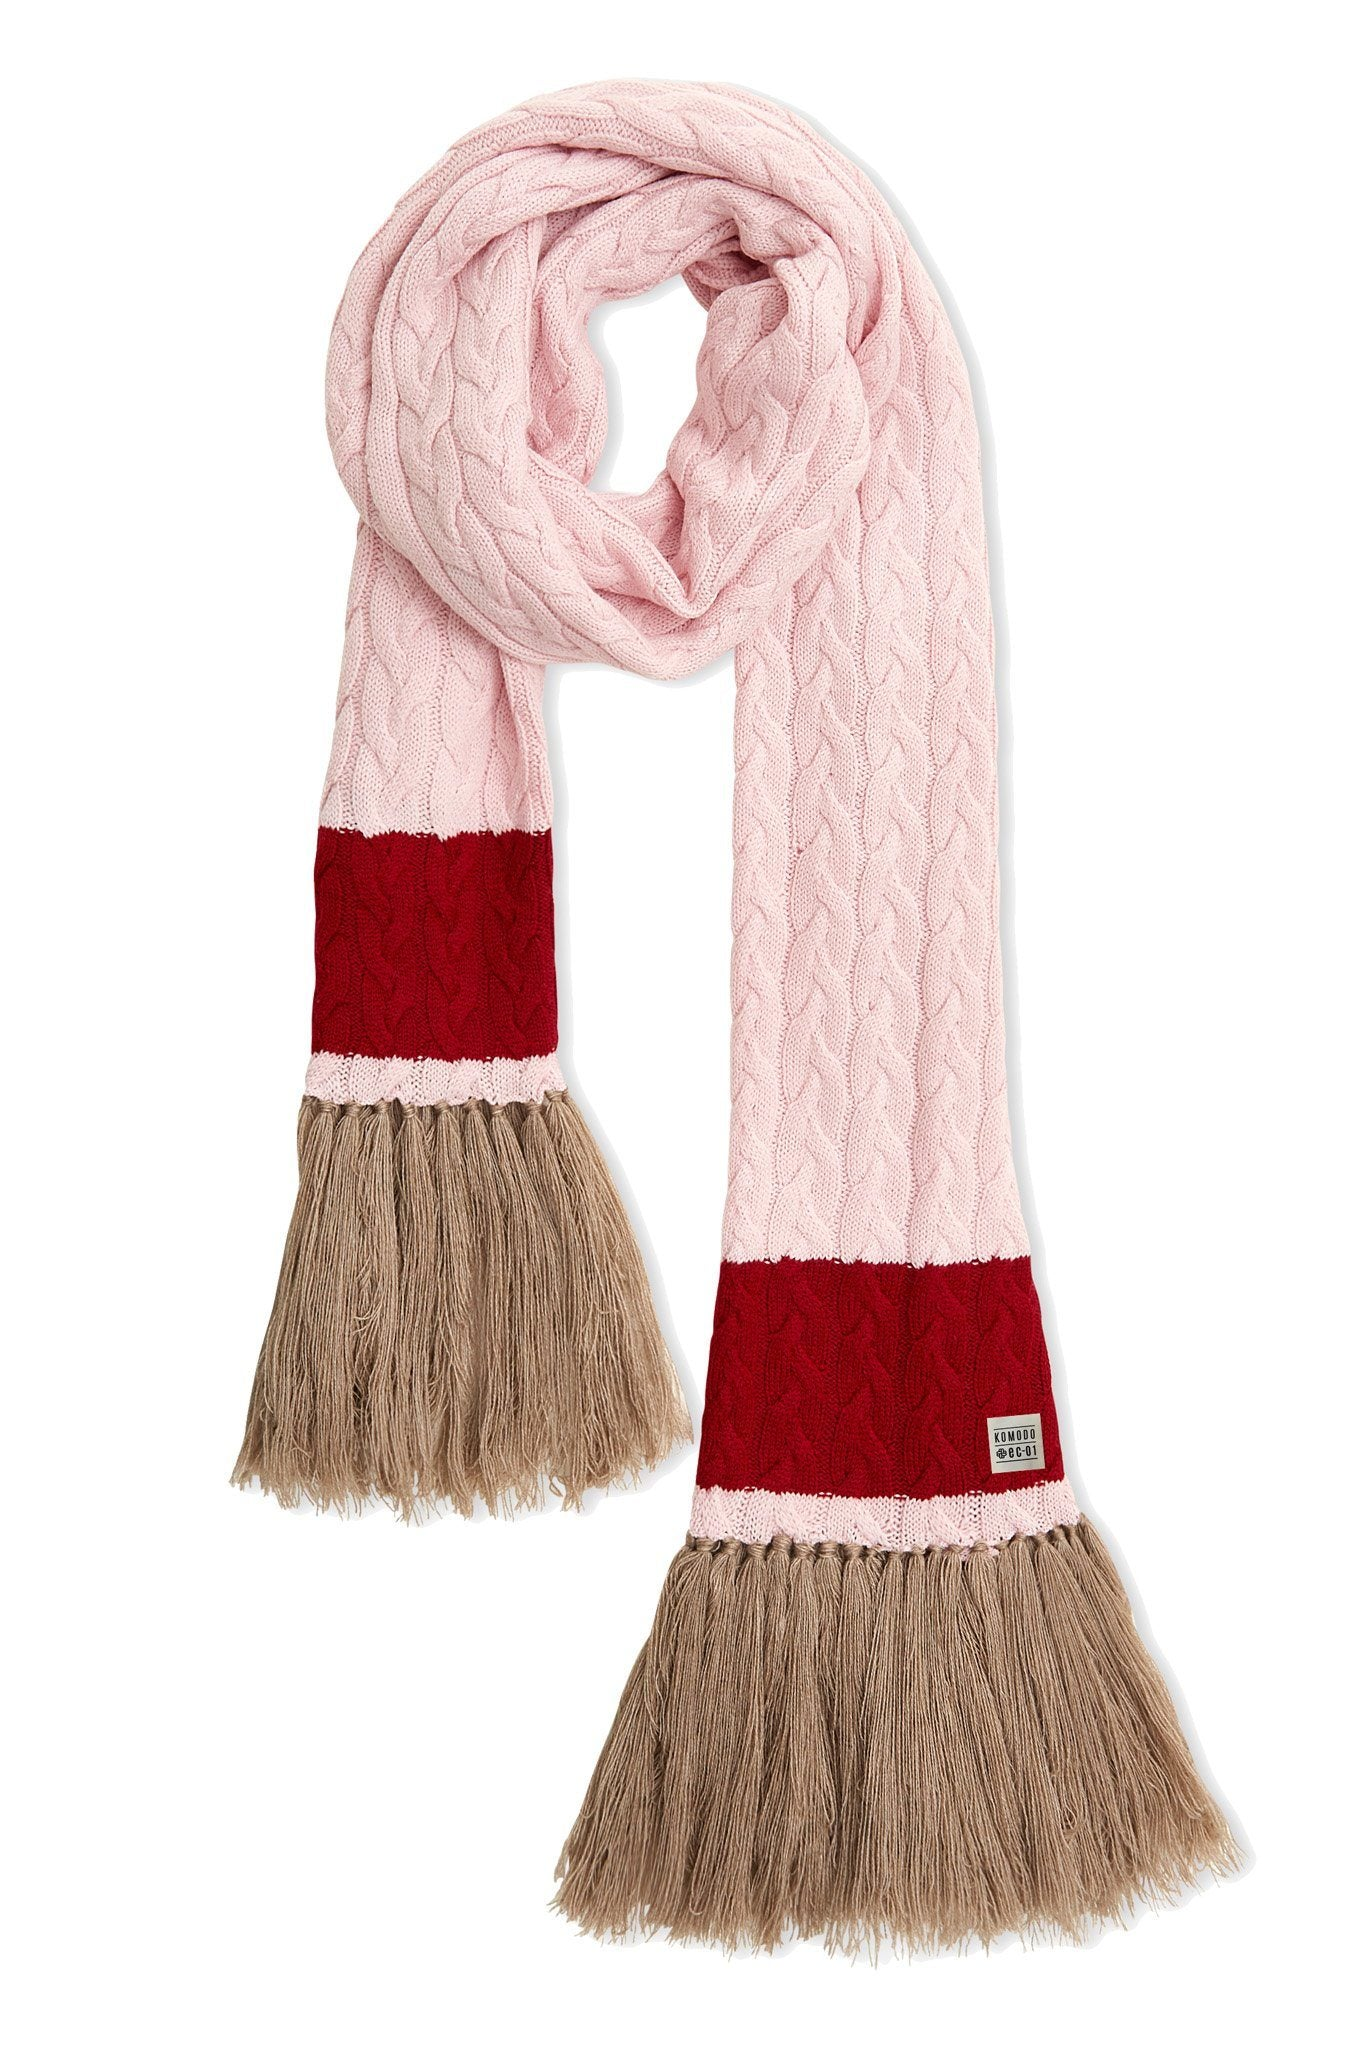 LUA Merino Wool Scarf Shell - Komodo Fashion